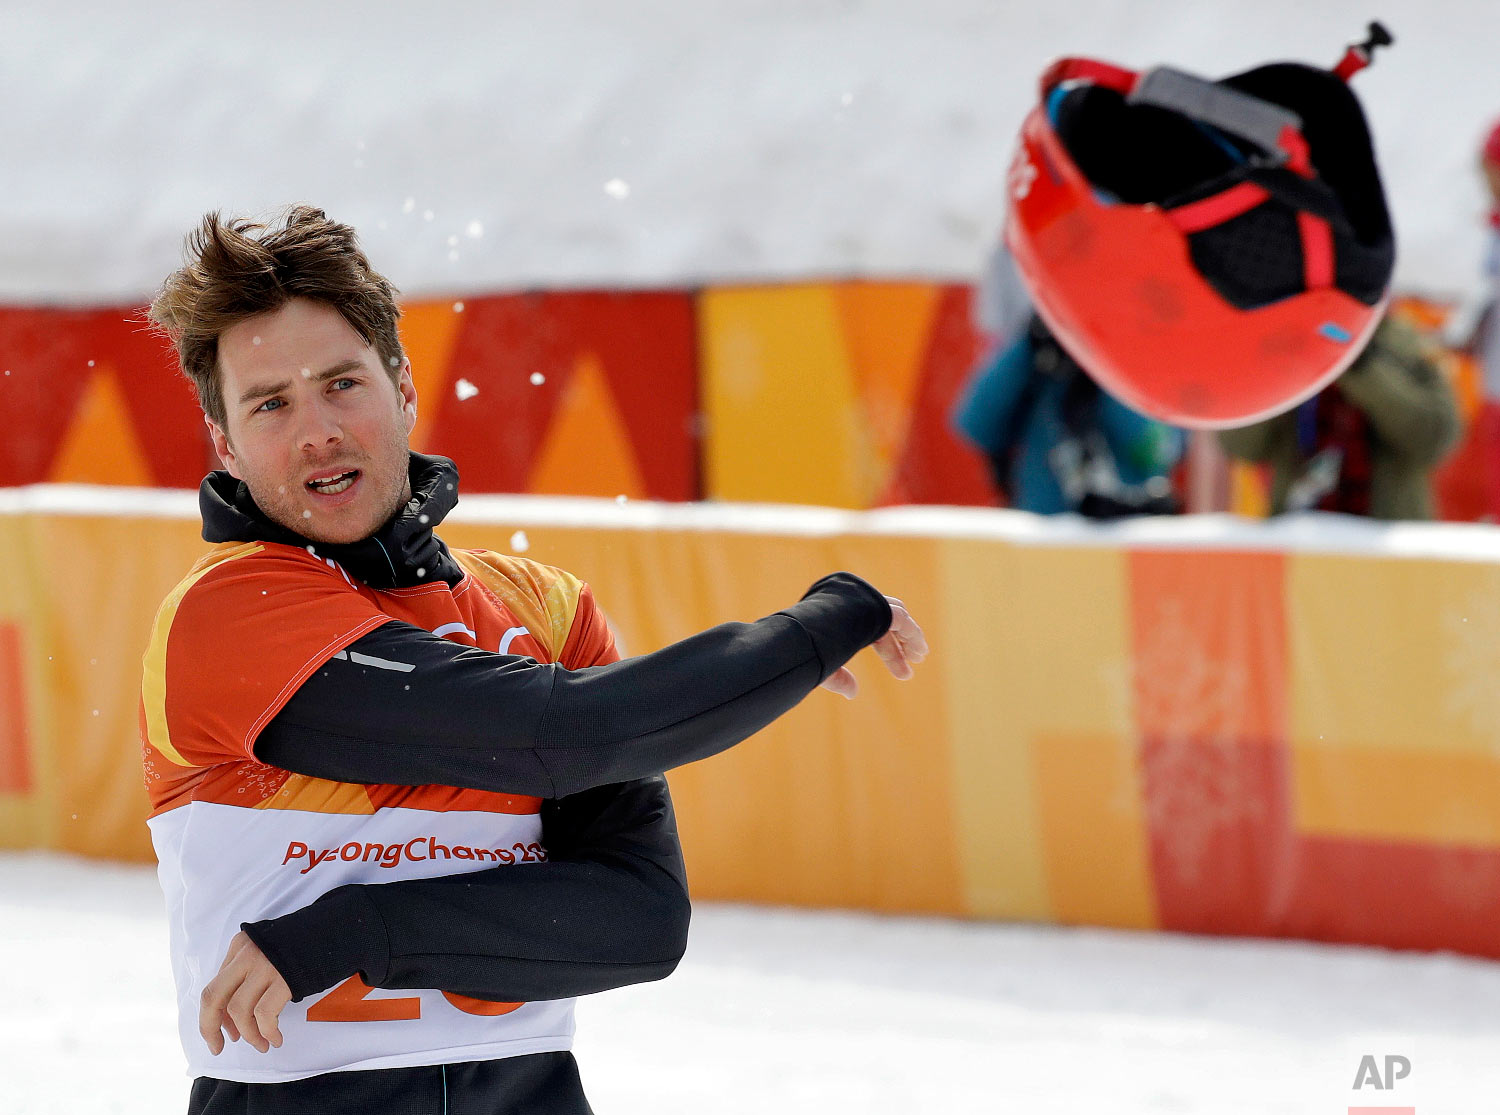 Bronze medal winner Zan Kosir, of Slovenia, tosses his helmet after the men's parallel giant slalom small final at Phoenix Snow Park at the 2018 Winter Olympics in Pyeongchang, South Korea, Saturday, Feb. 24, 2018. (AP Photo/Kin Cheung)